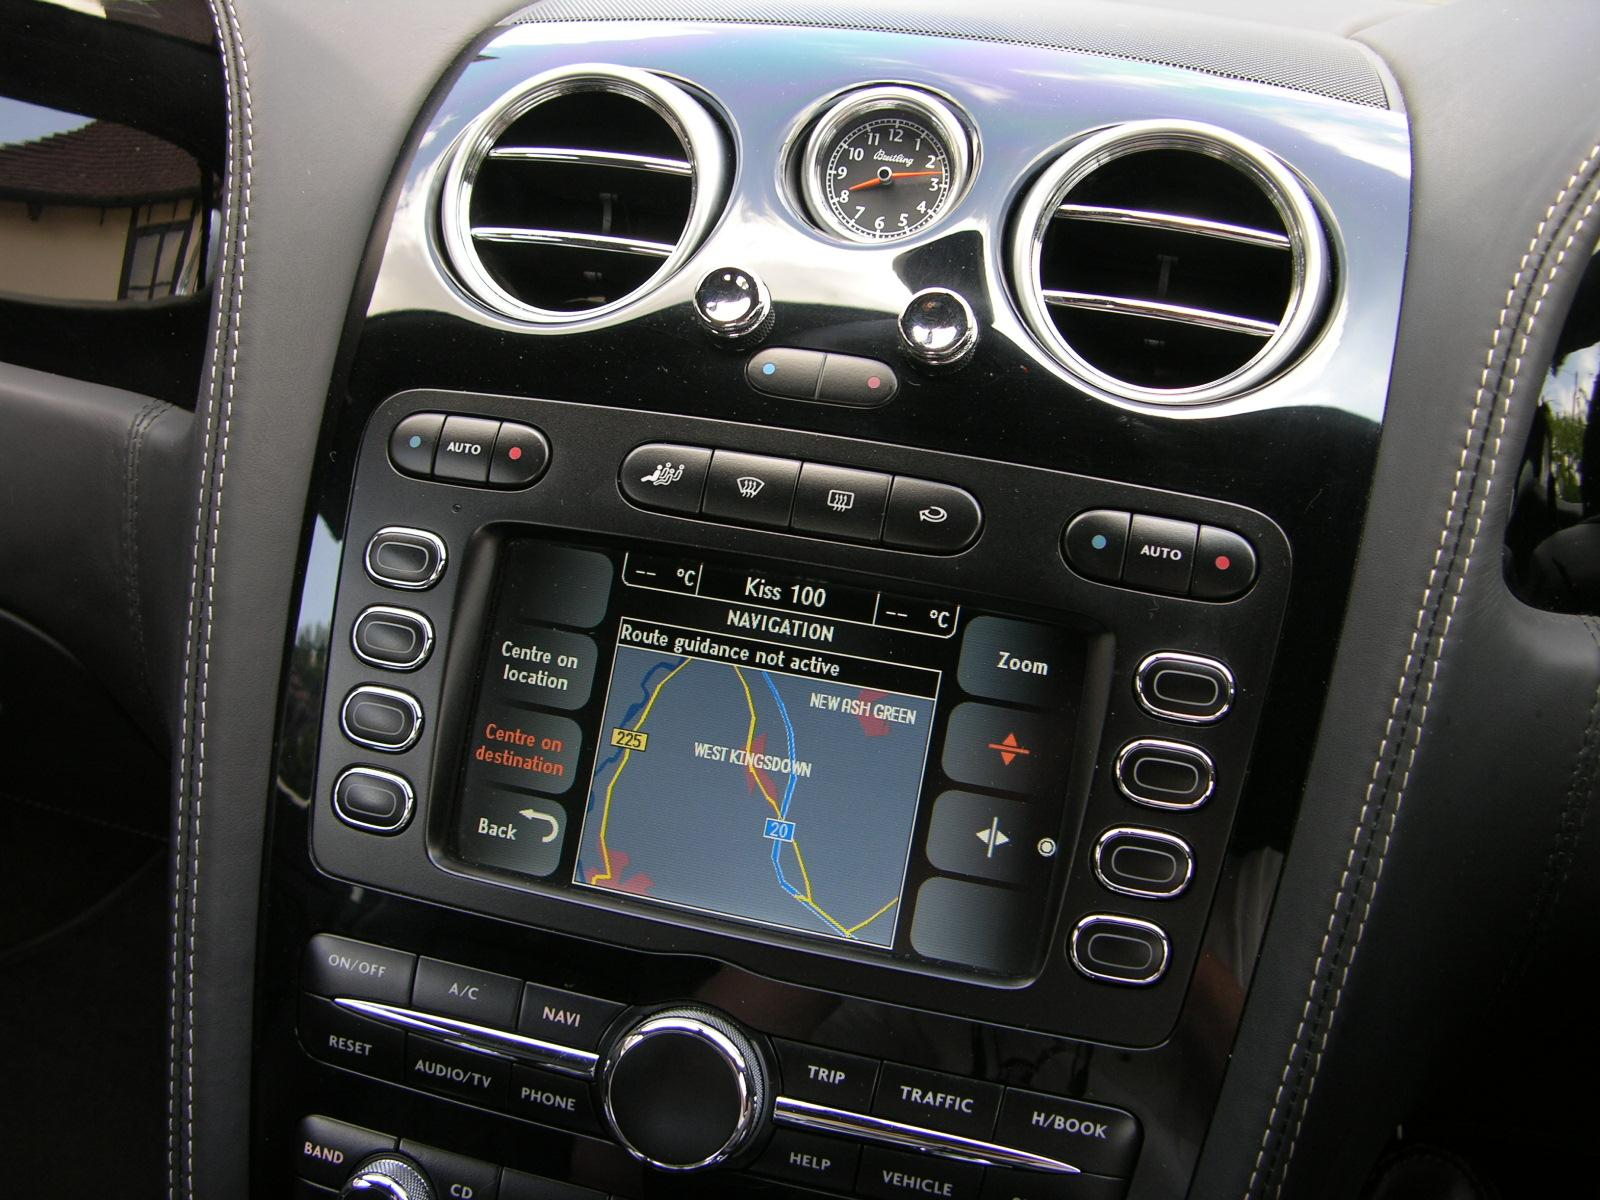 Image result for Car audio flickr